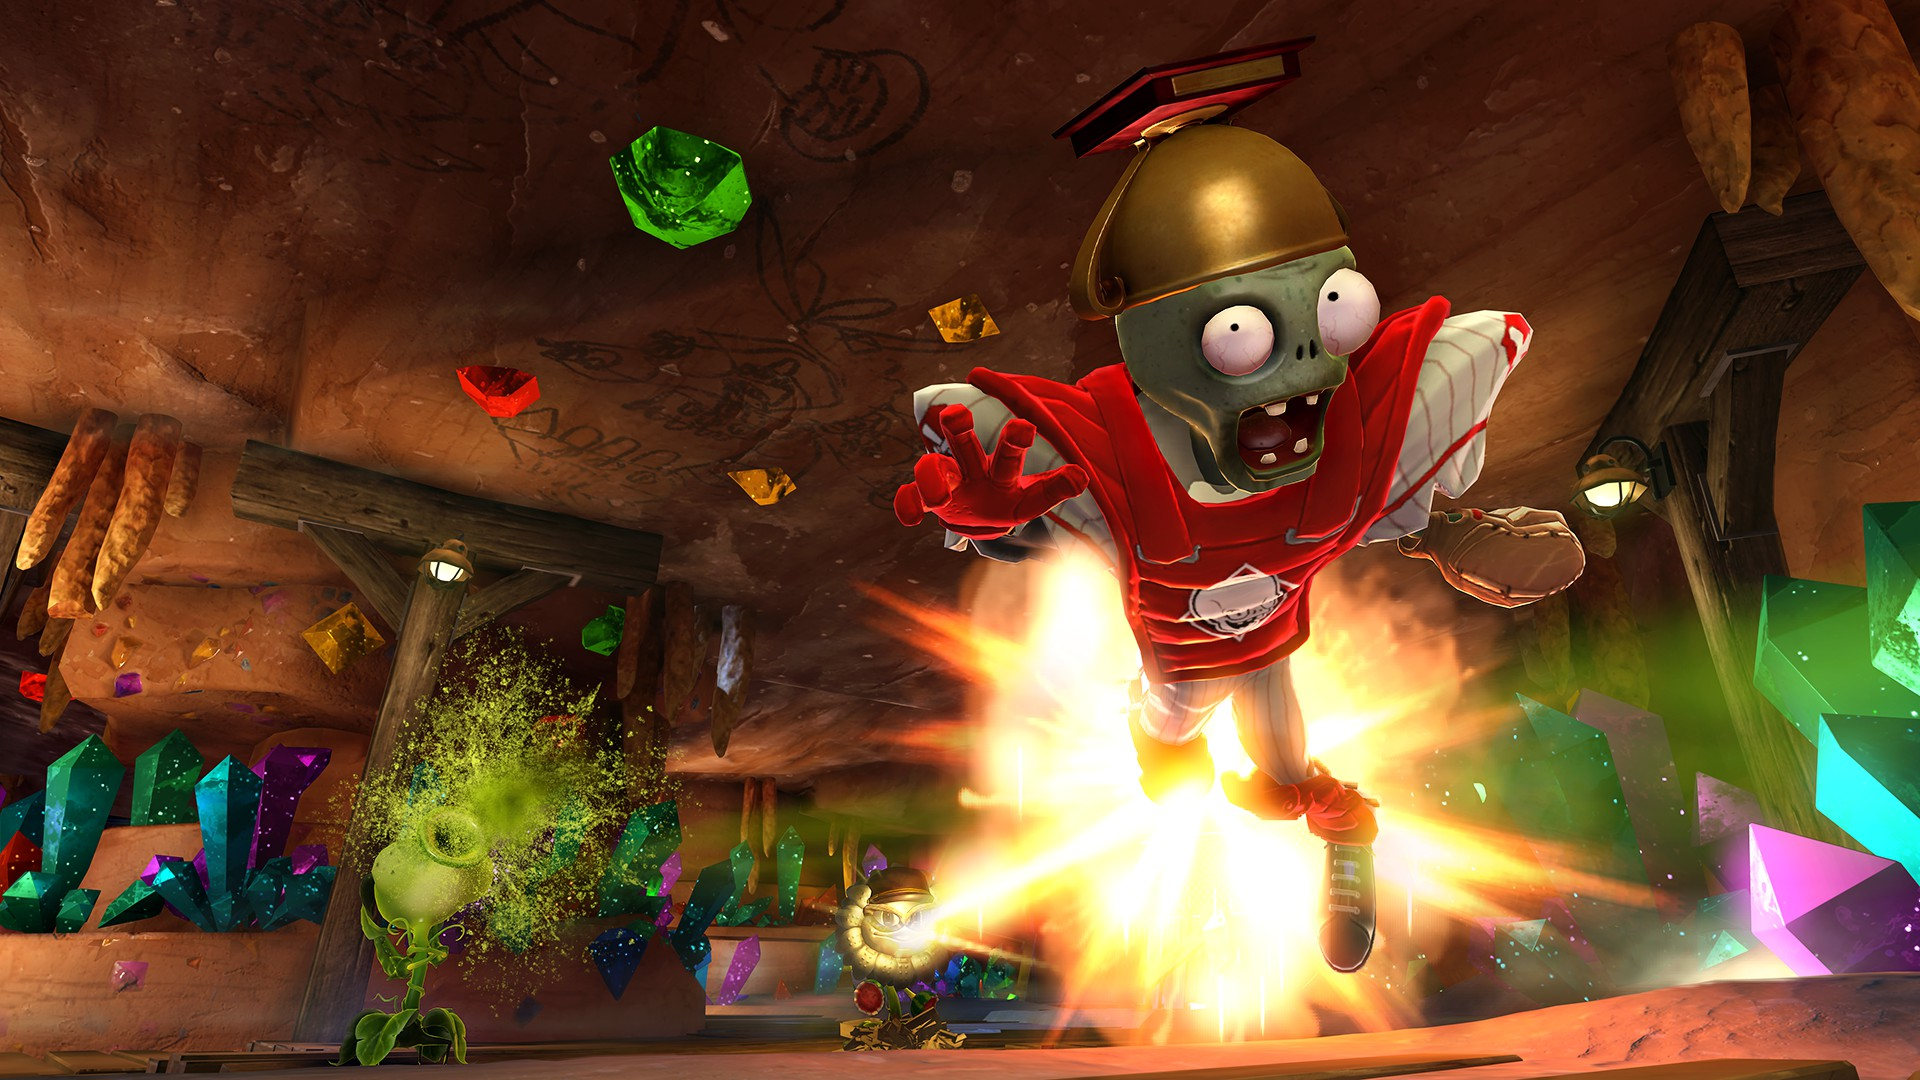 Plants vs. Zombies: Garden Warfare is a multiplayer third-person shooter and tower defense video game, it is part of Plants vs. Zombies series, developed by PopCap Games and published by Electronic Arts.